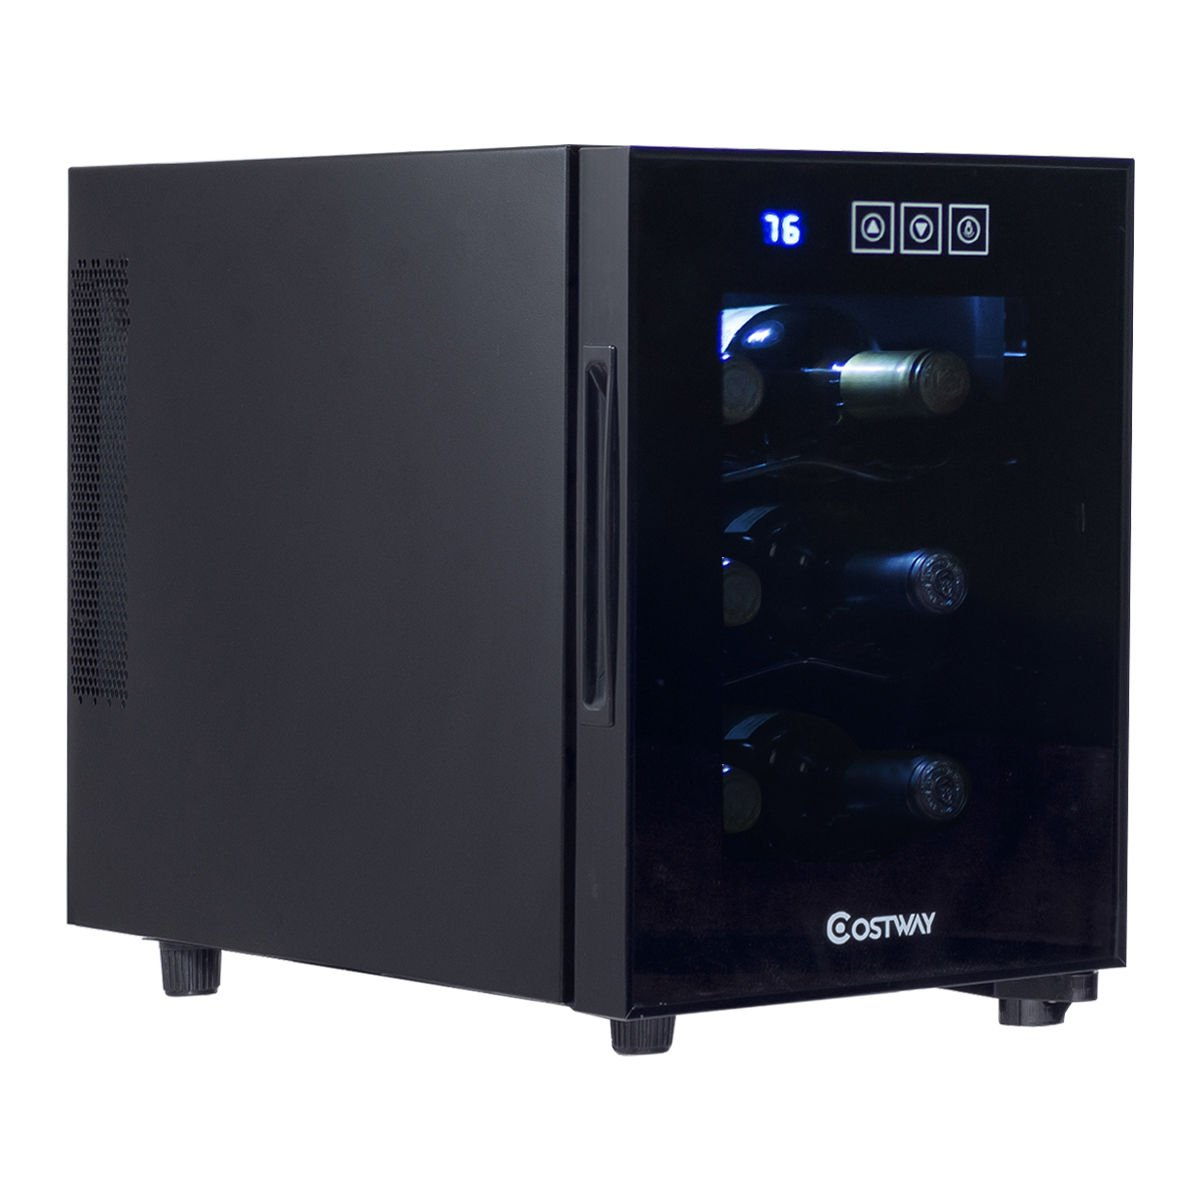 Costway Thermoelectric Wine Cooler Freestanding Cellar Chiller Refrigerator Quiet Compact w/Touch Control (6 Bottle)